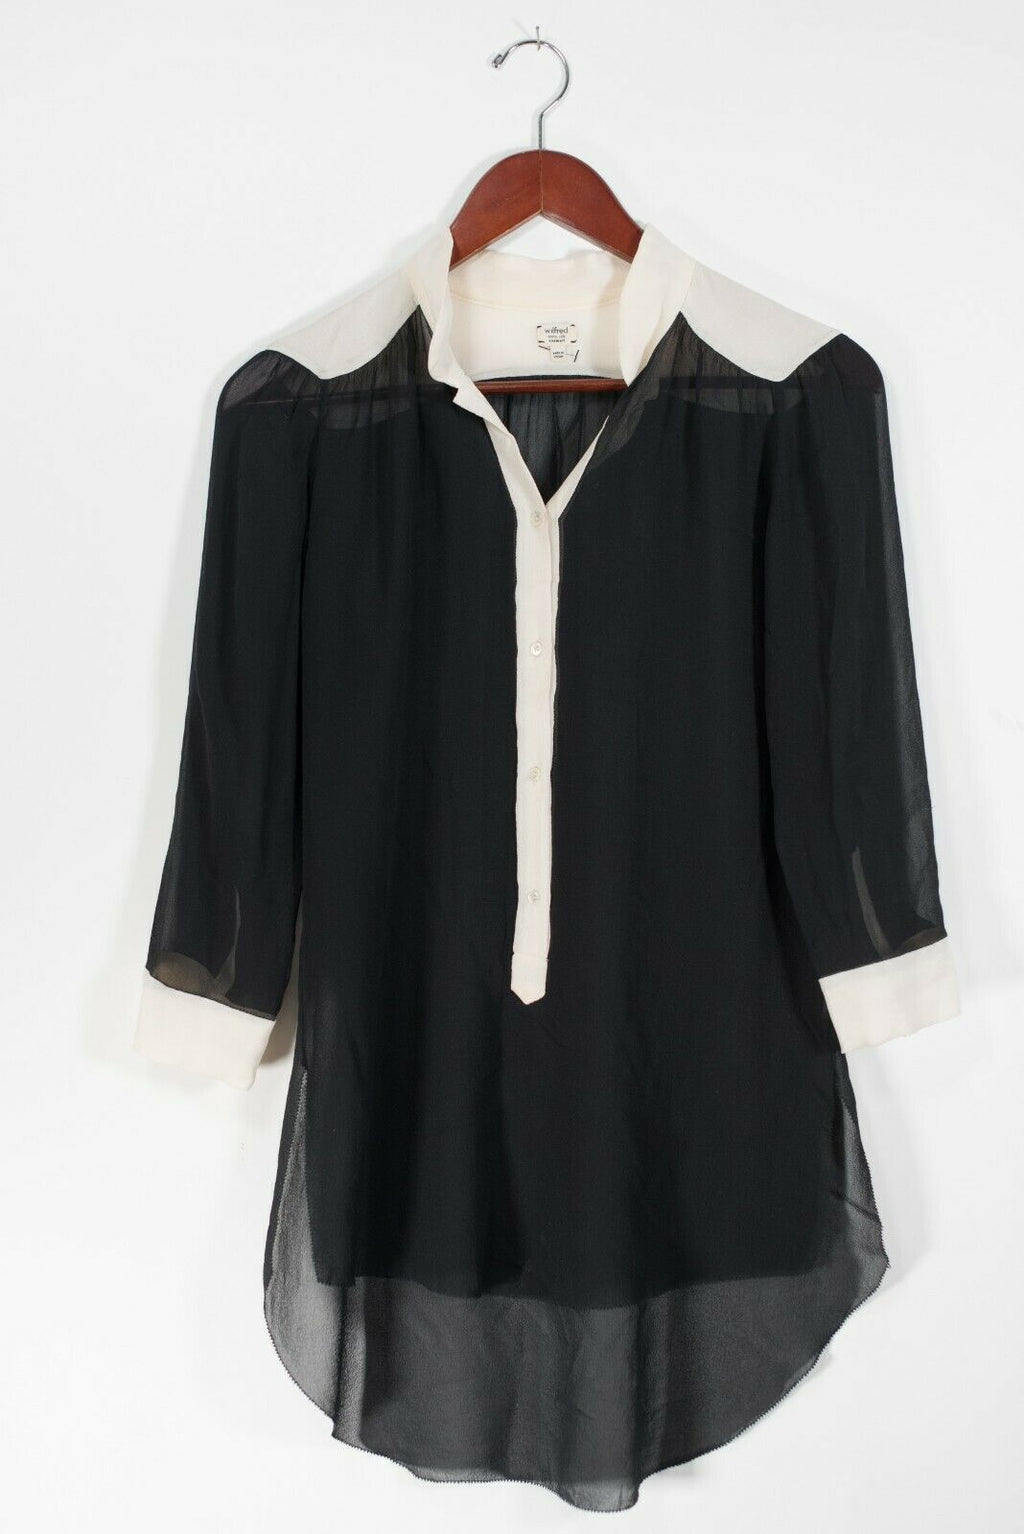 Artizia Wilfred Womens XXS Black Ivory Guilia Blouse Semi Sheer V-Neck Tunic Top